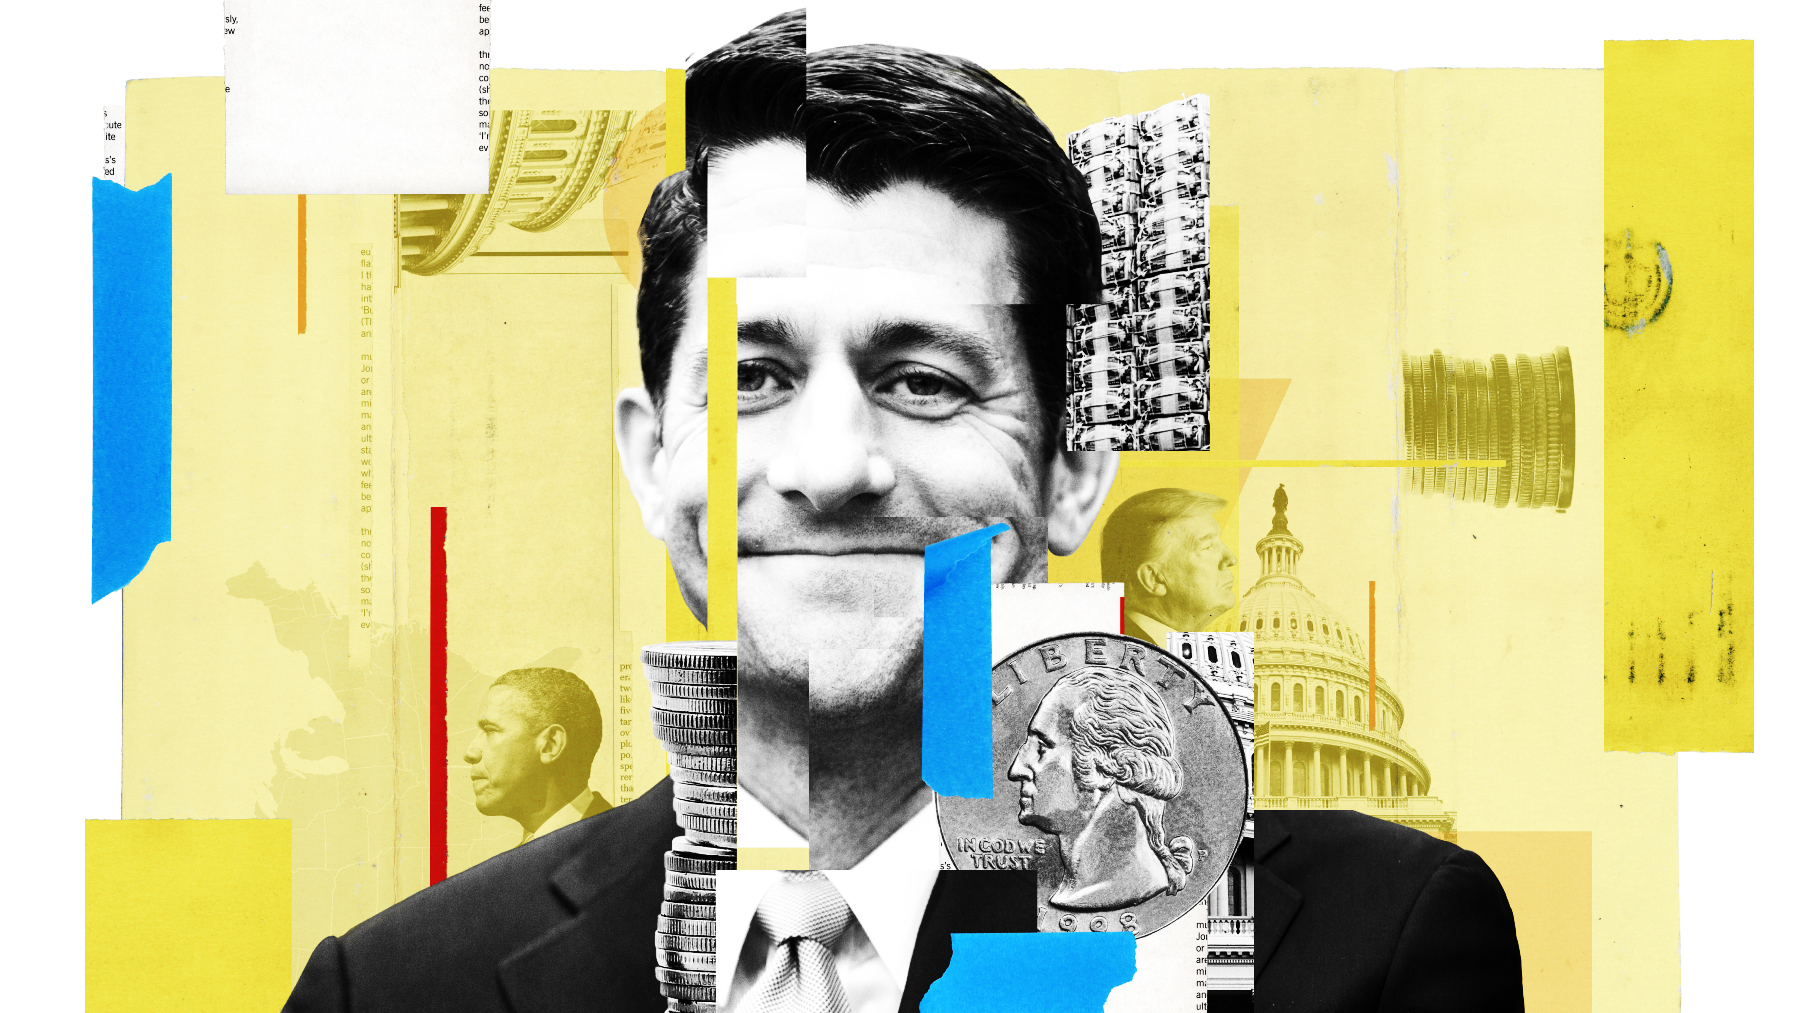 Speaker Paul Ryan retires: his legacy is debt and disappointment  - Vox